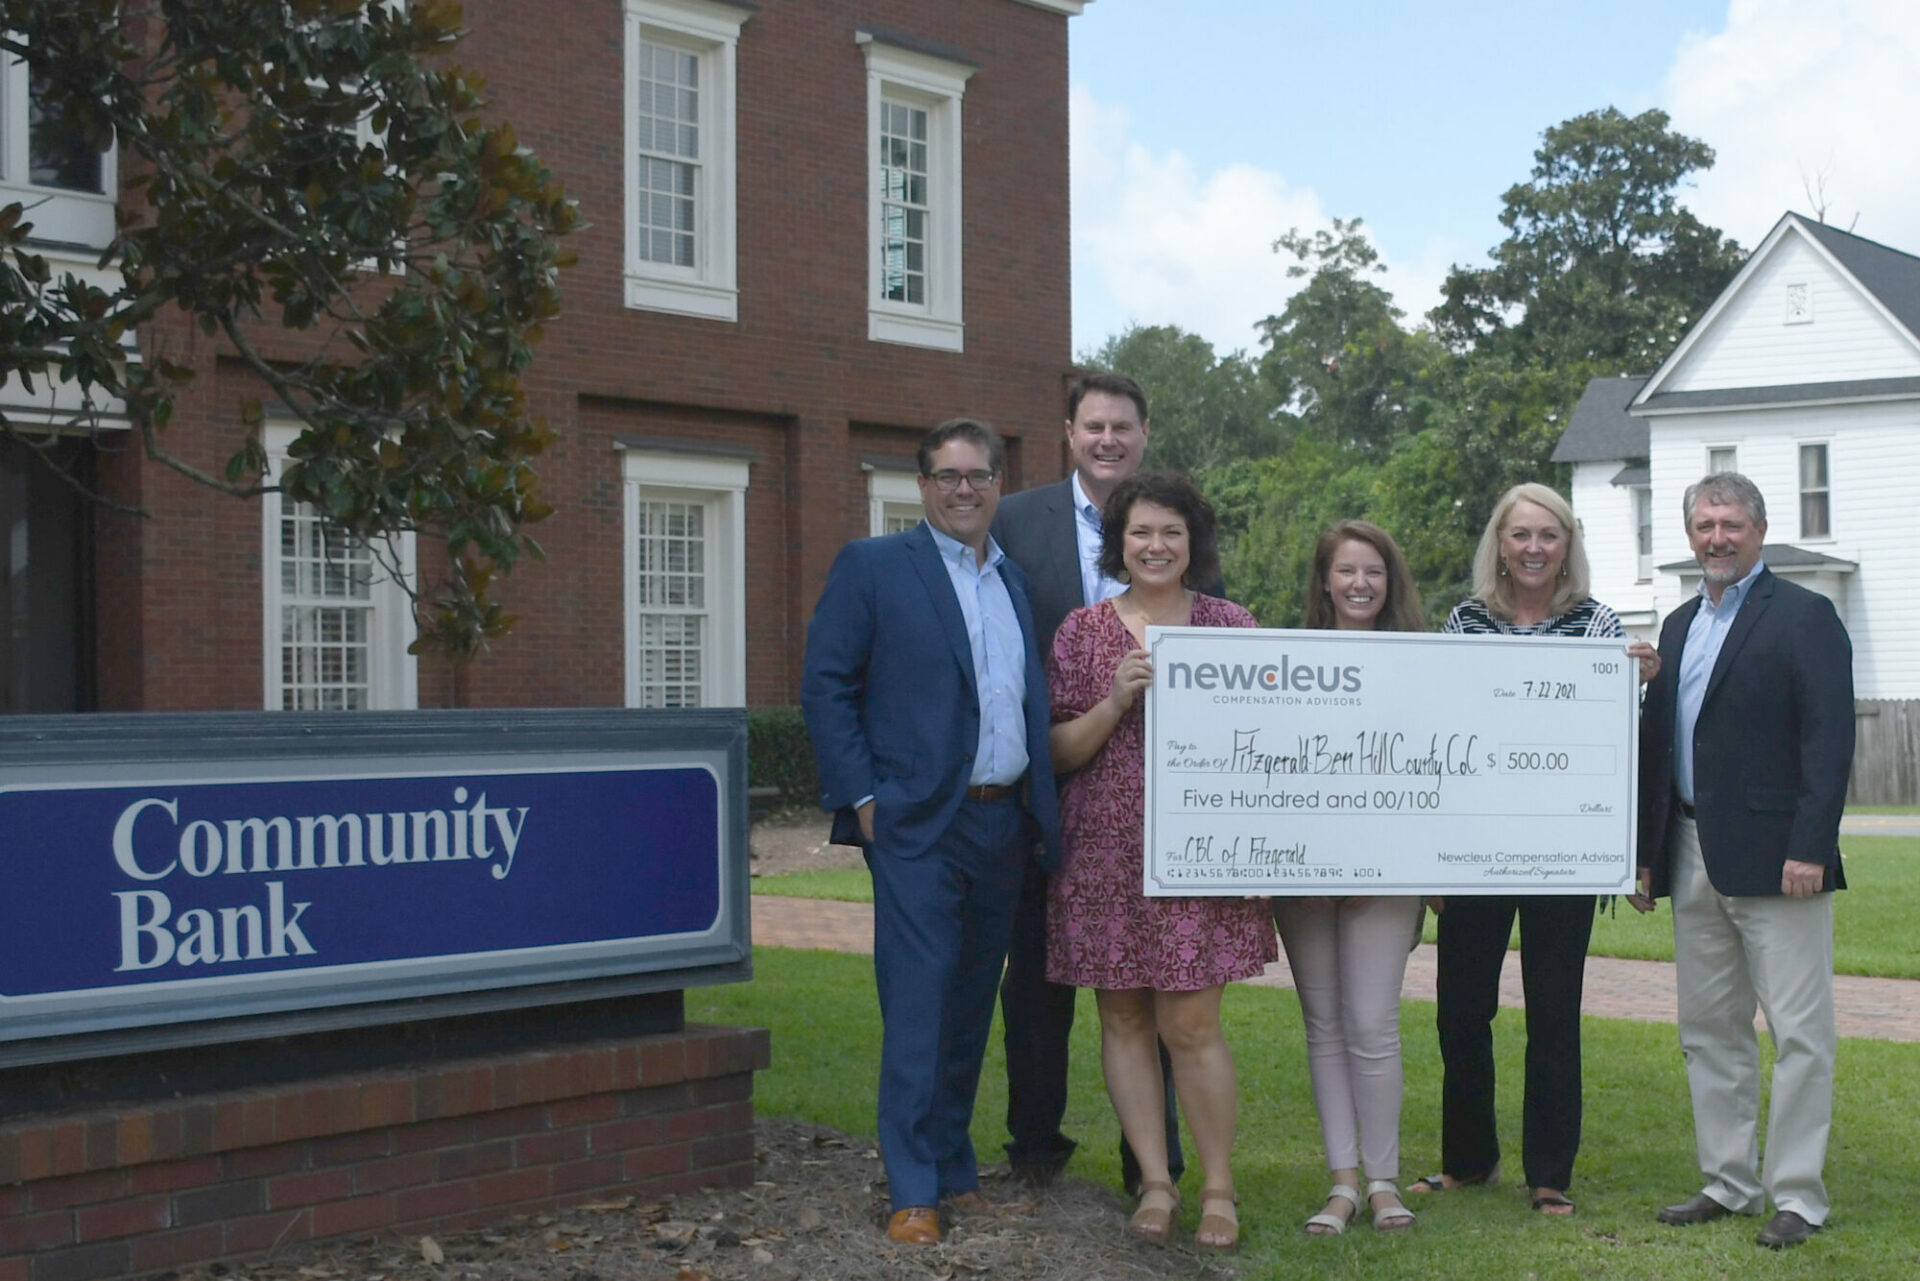 Newcleus Compensation. (Pictured from left to right: JR Llewellyn and Charlie Hicks from Newcleus, Melissa Dark and Jessica Griner from Fitzgerald-Ben Hill County Chamber of Commerce, Debra B. Weil and Corey Gibbs from Community Banking Company of Fitzgerald).Advisors donate $500 to Fitzgerald Chamber of Commerce at the Community Bankers Association of Georgia Convention.